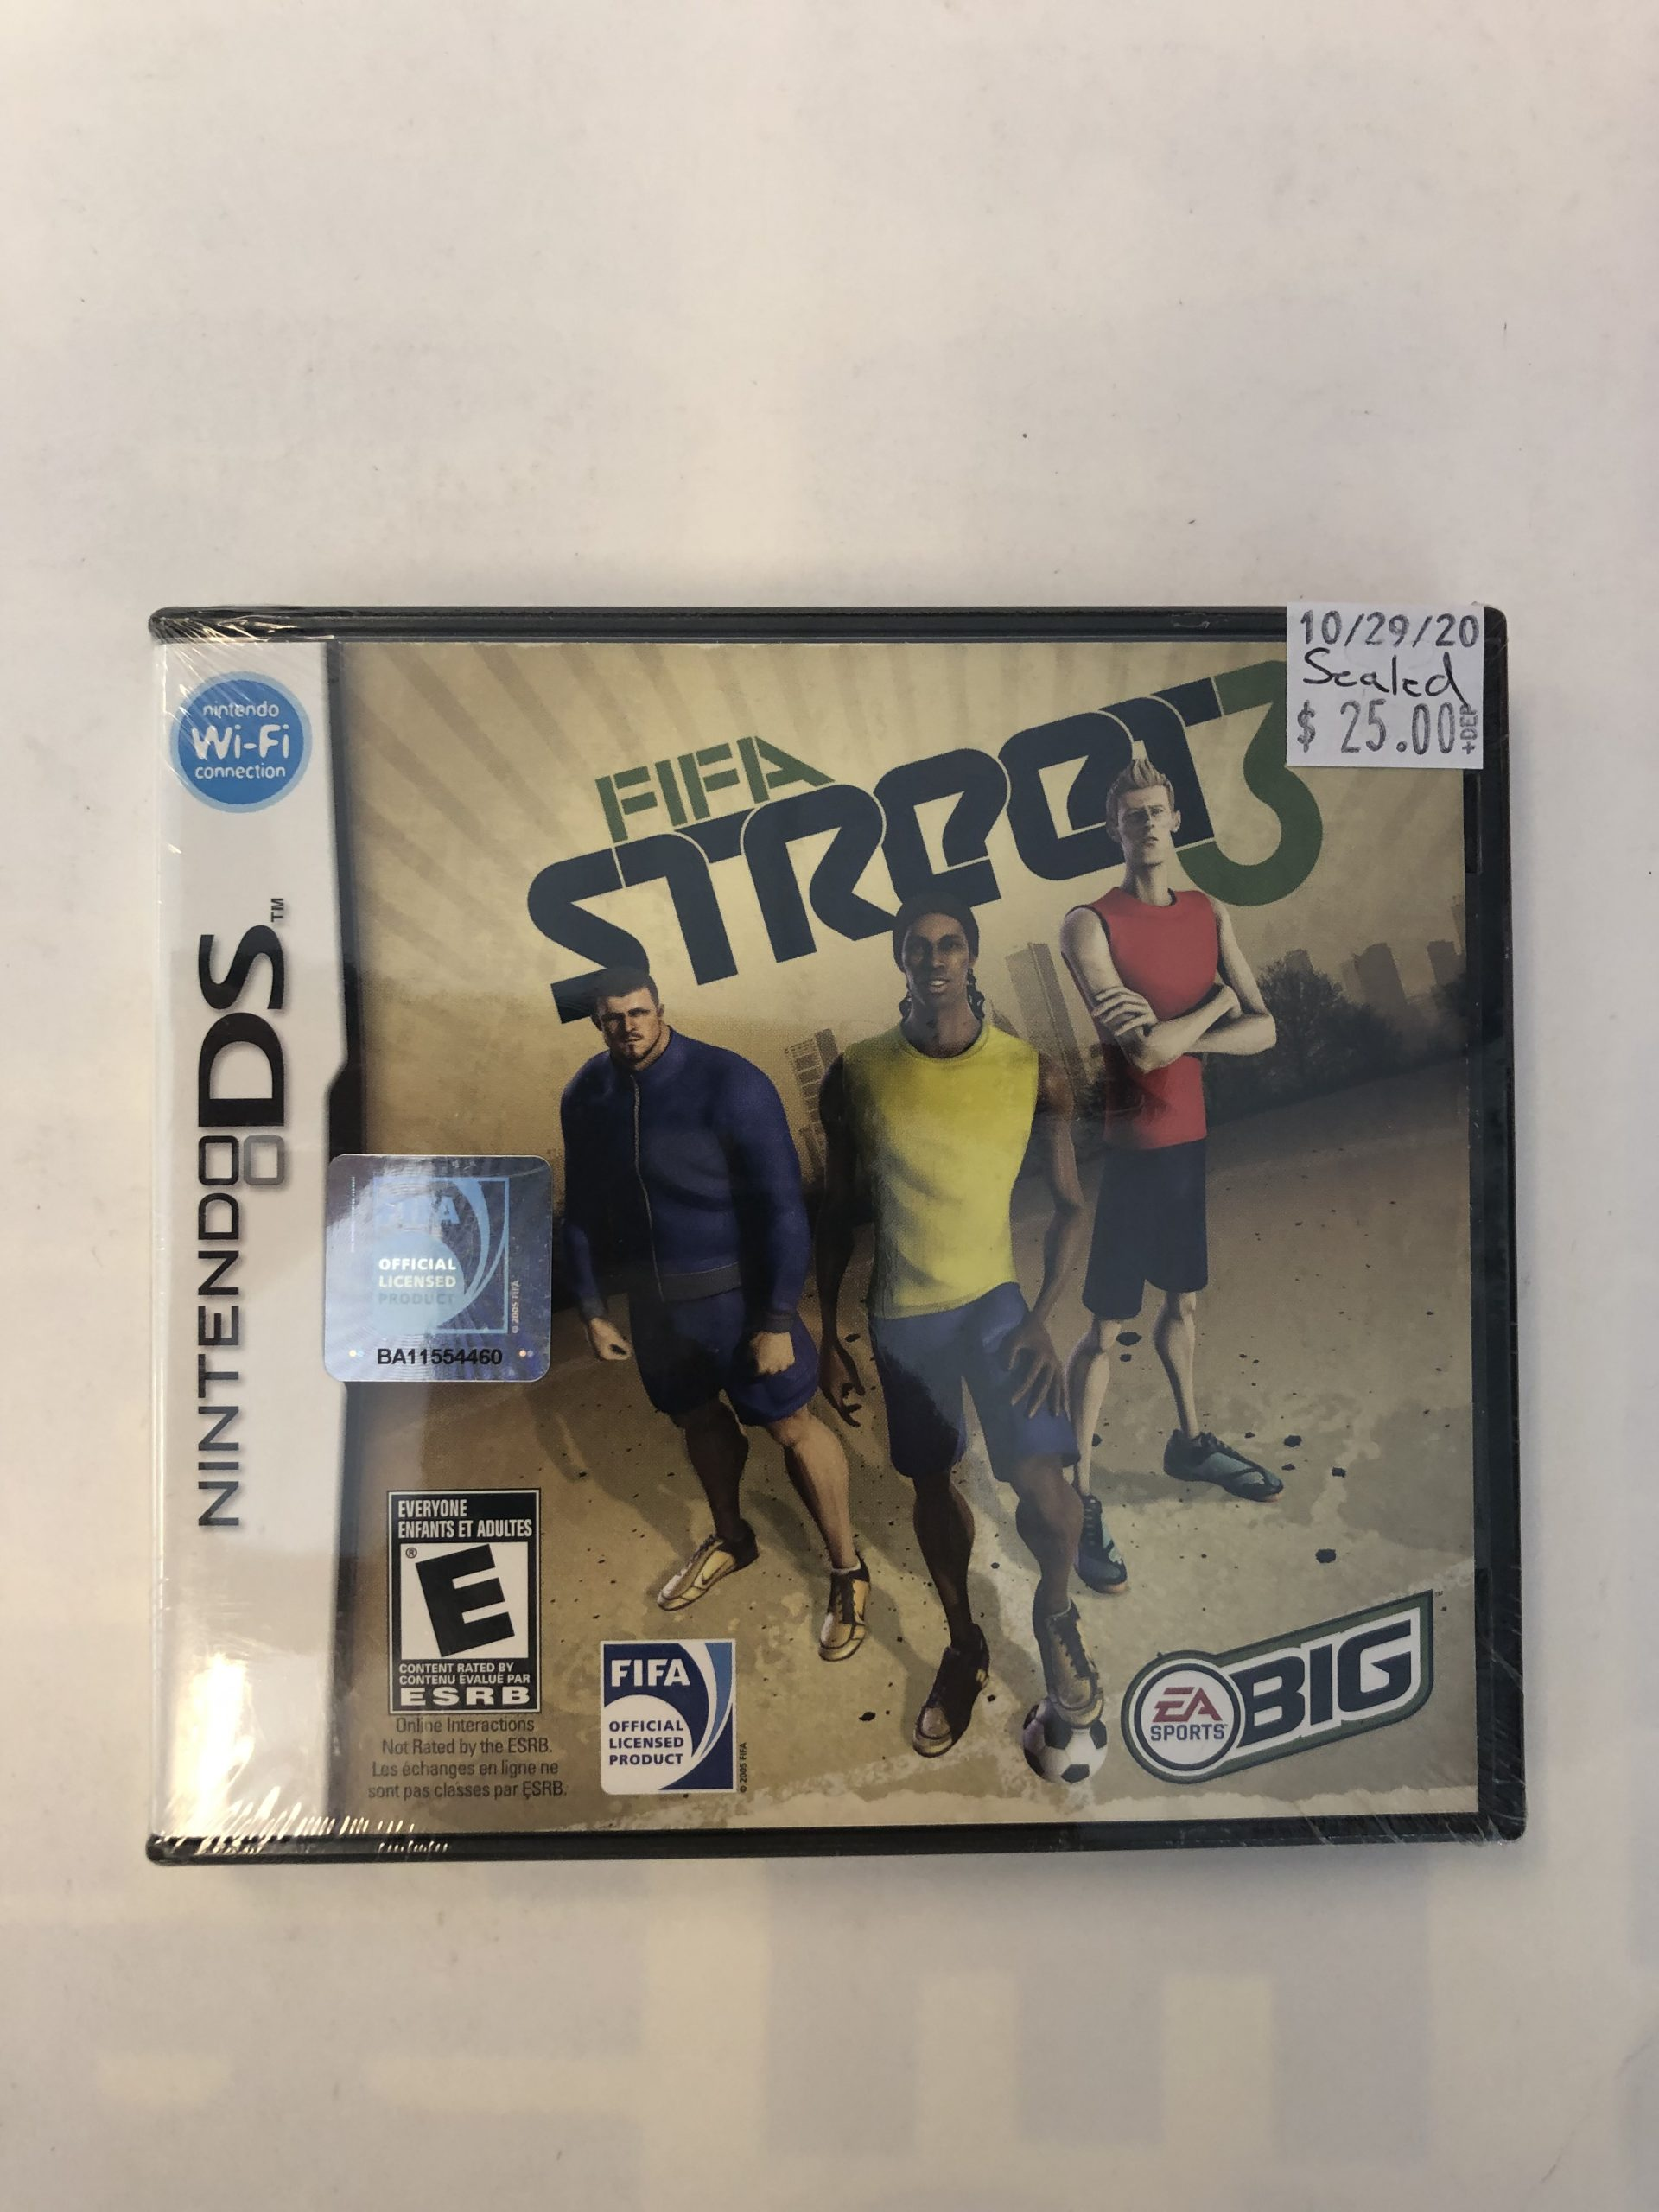 SEALED Fifa Street 3 DS